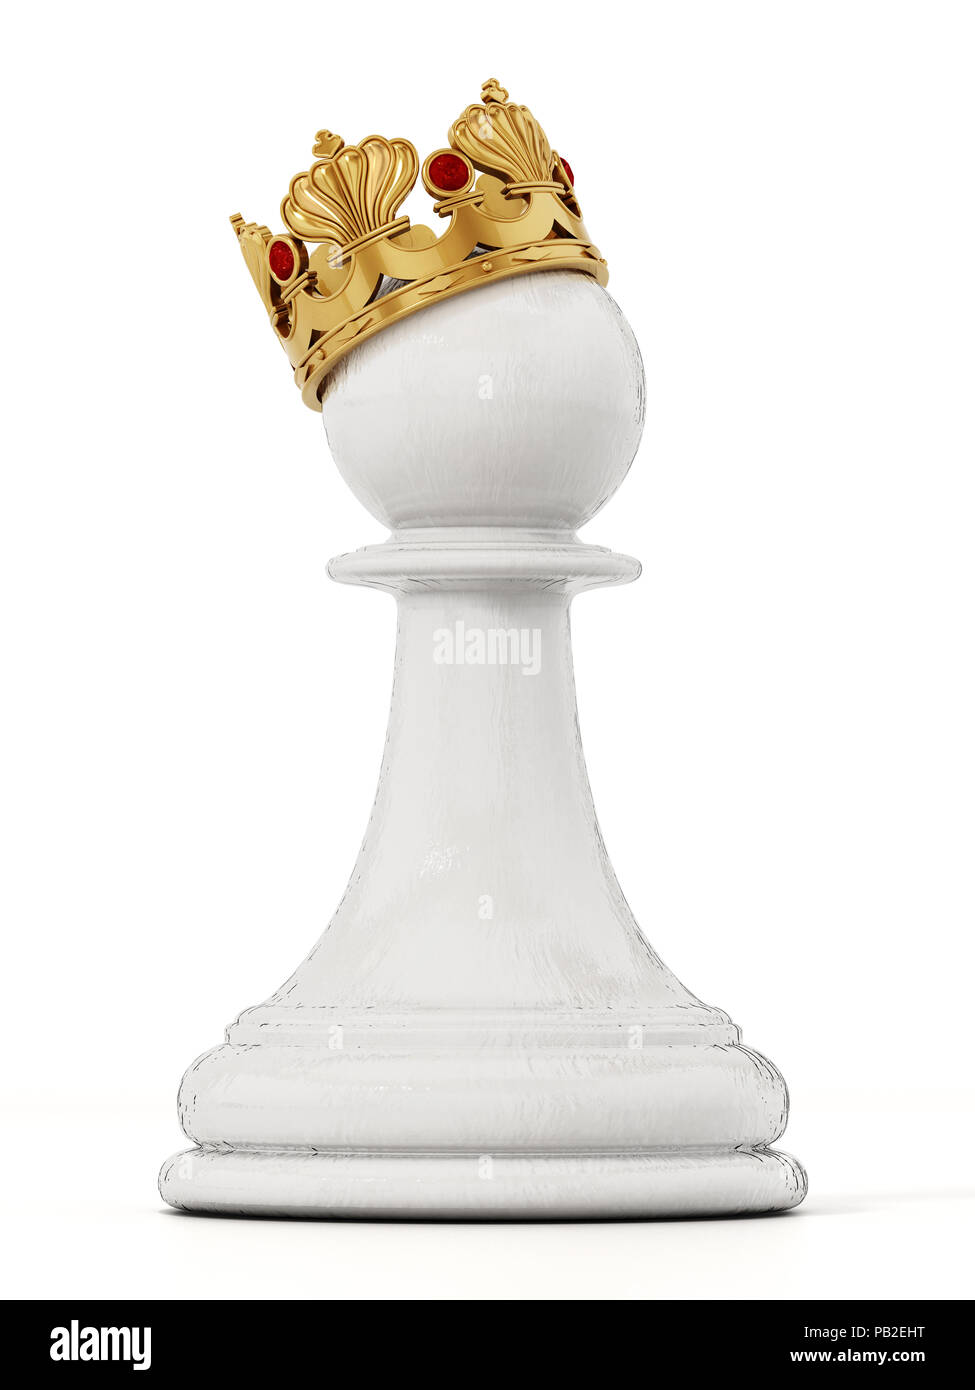 White chess pawn with golden crown. 3D illustration. - Stock Image